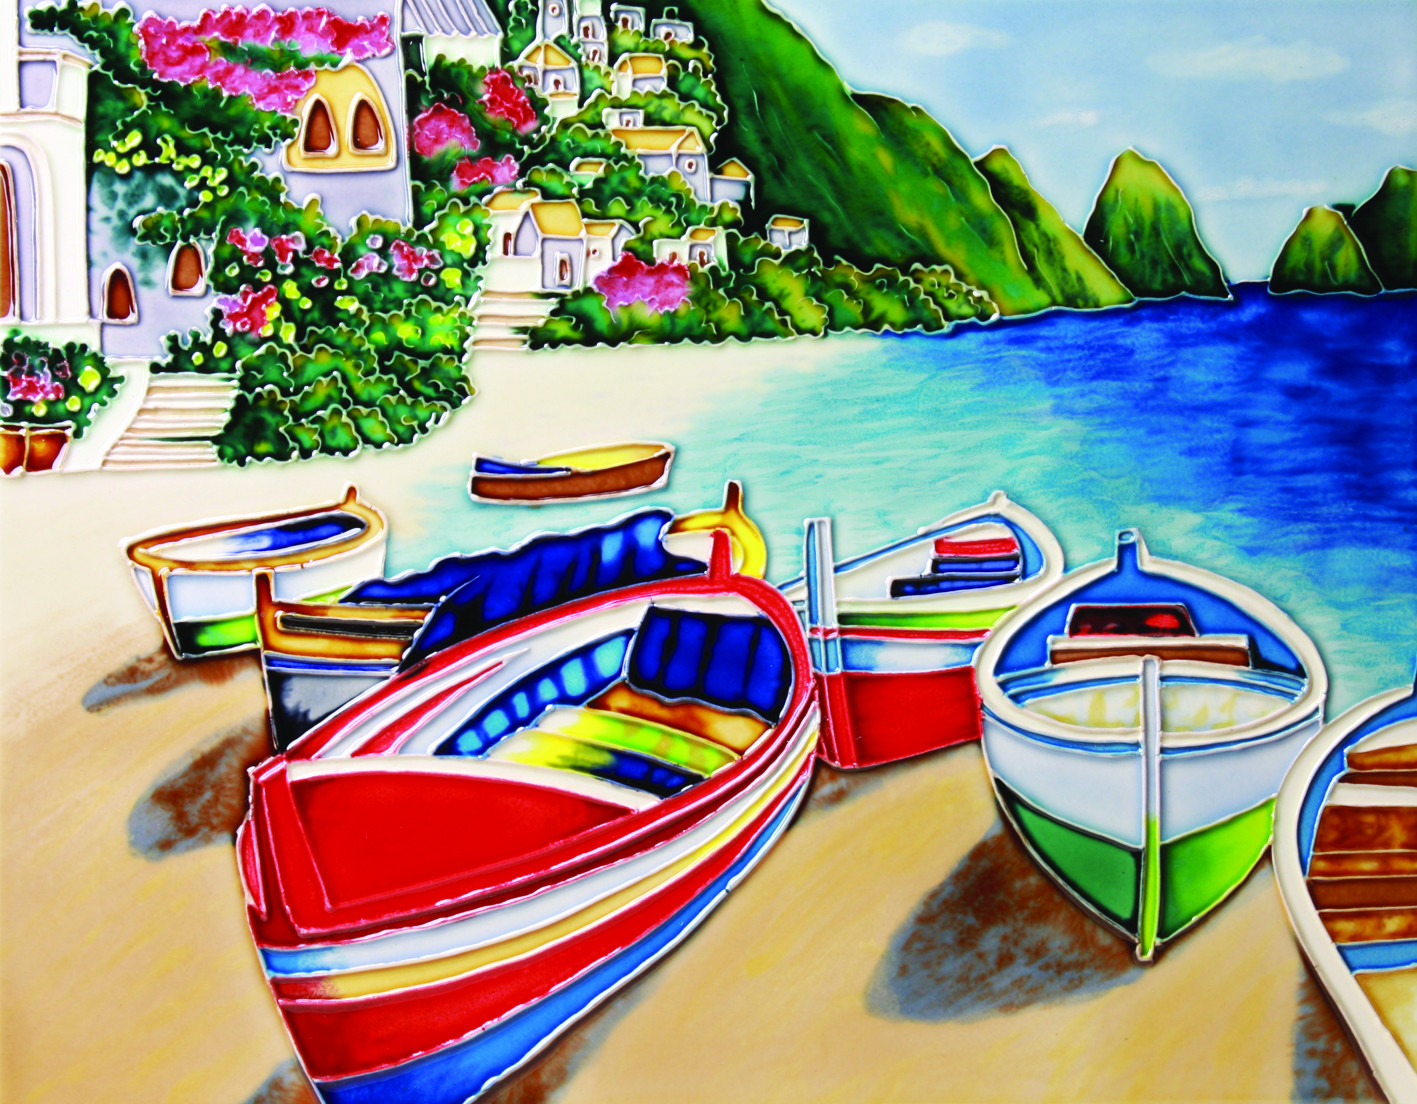 Colourful Boats 2 11×14 (520523)